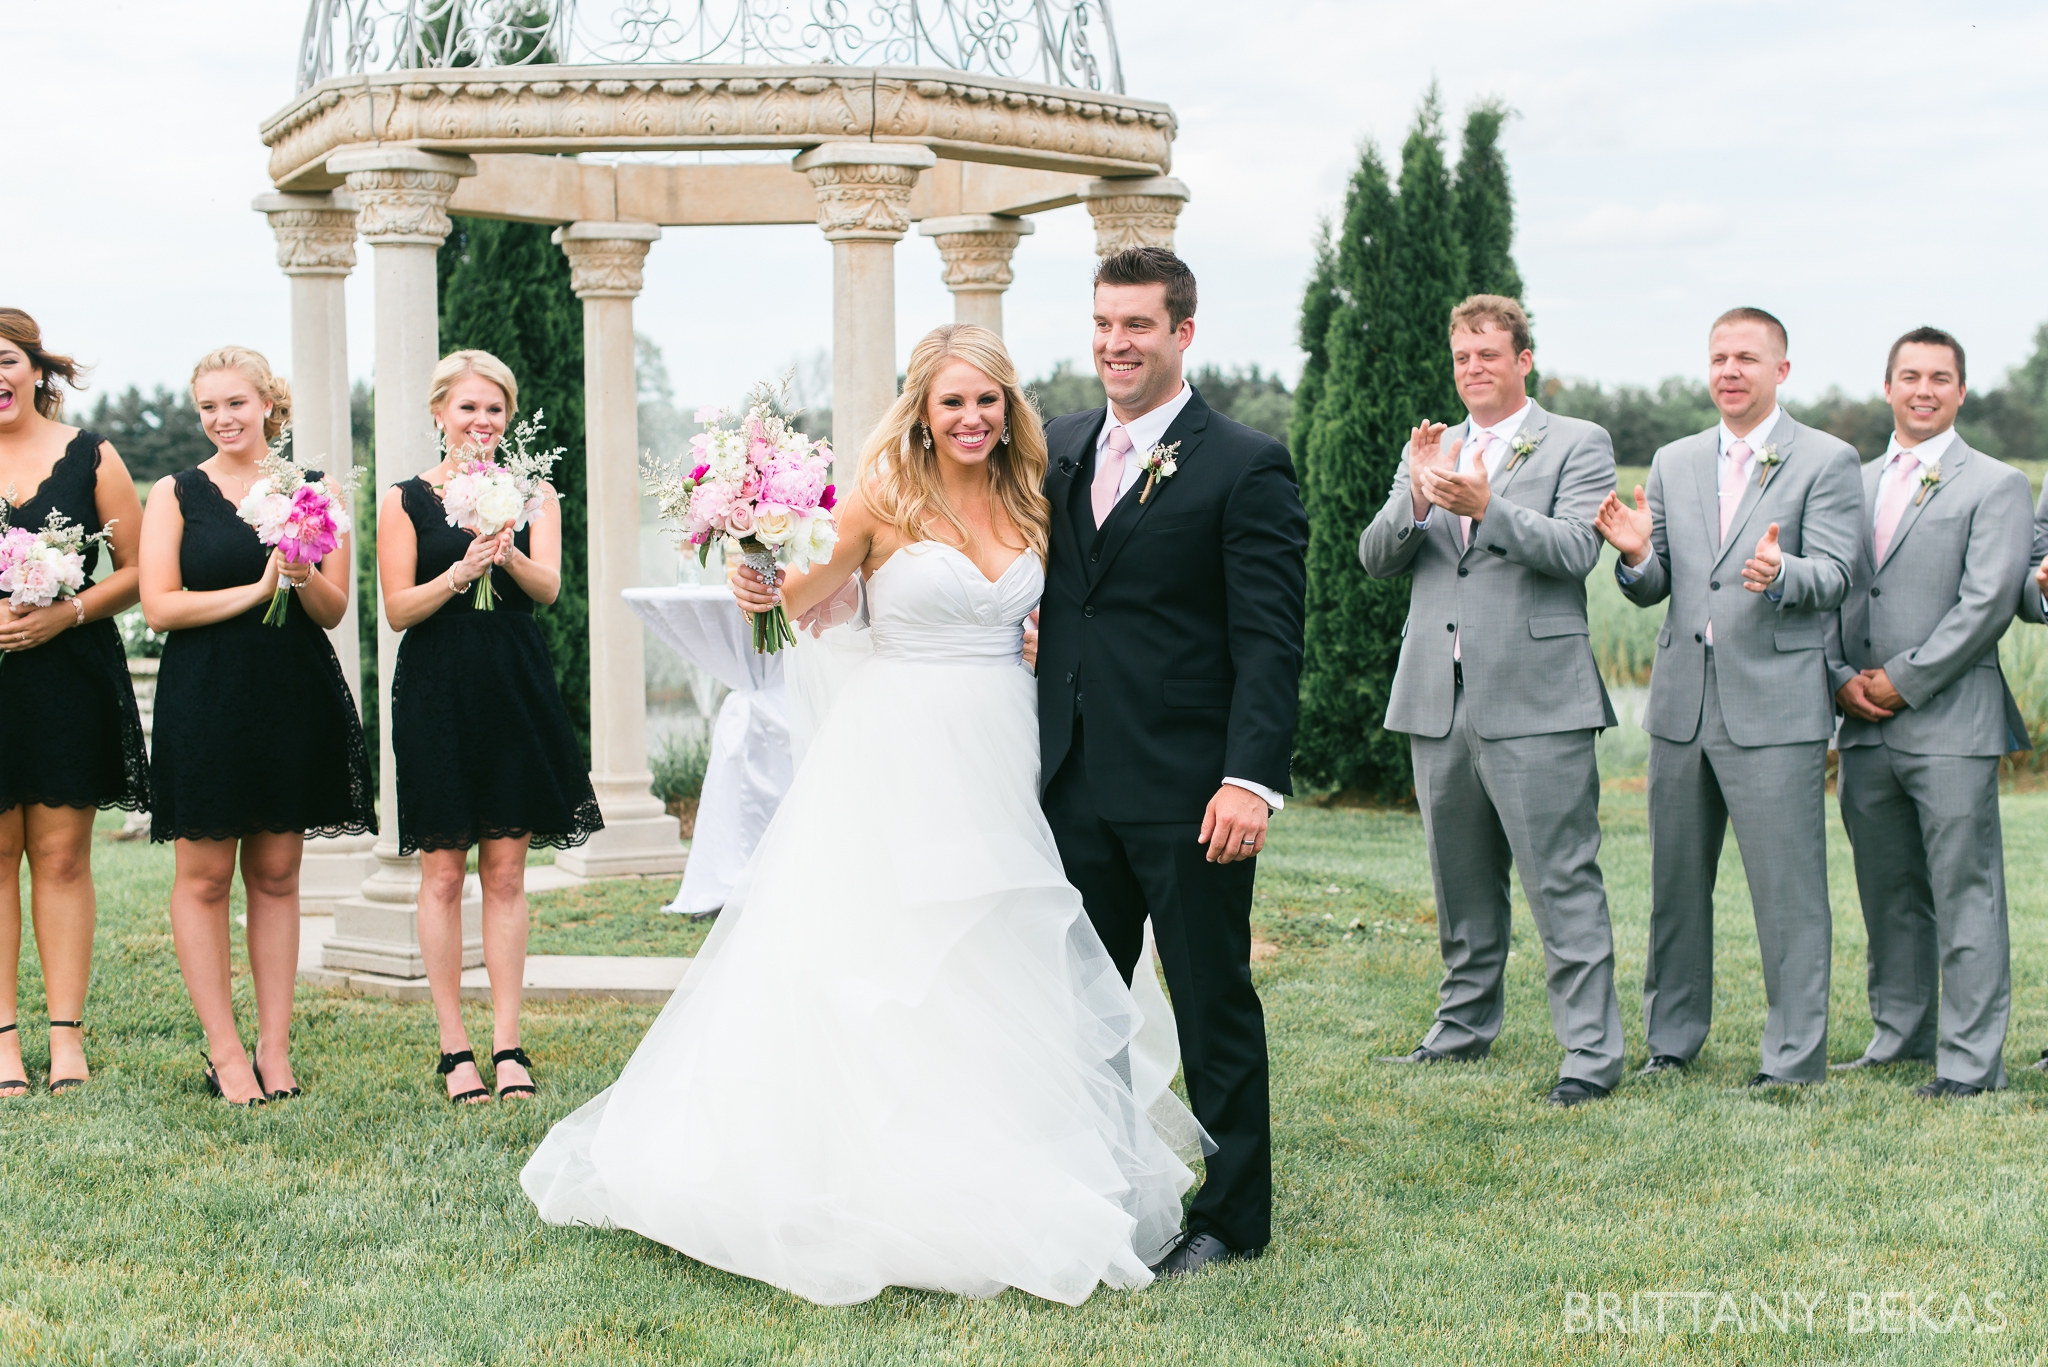 New Buffalo Wedding - Willow Harbor Vineyards Wedding Photos - Brittany Bekas Photography_0042